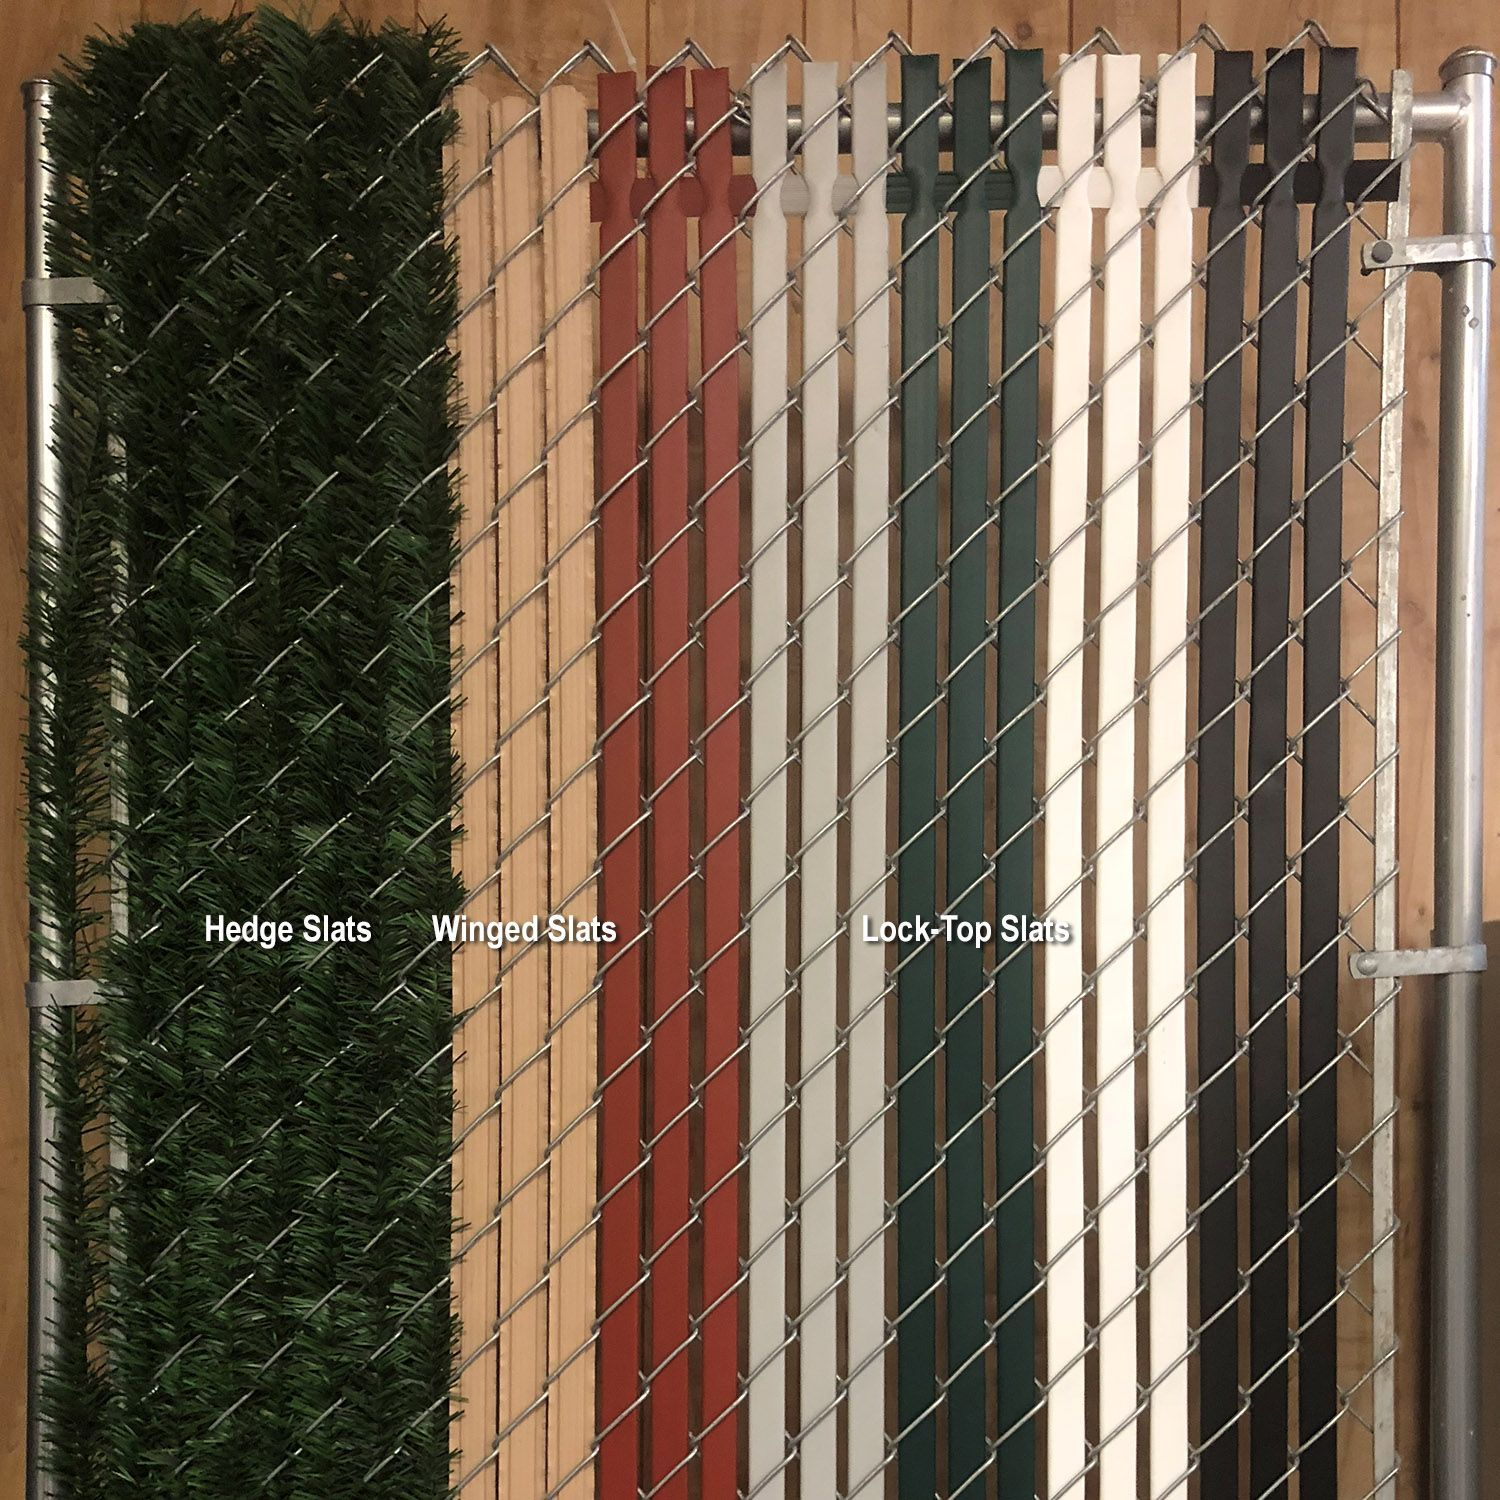 Pexco Pds Top Lock Privacy Slats For Chain Link Fence Fence Slats Black Chain Link Fence Chain Link Fence